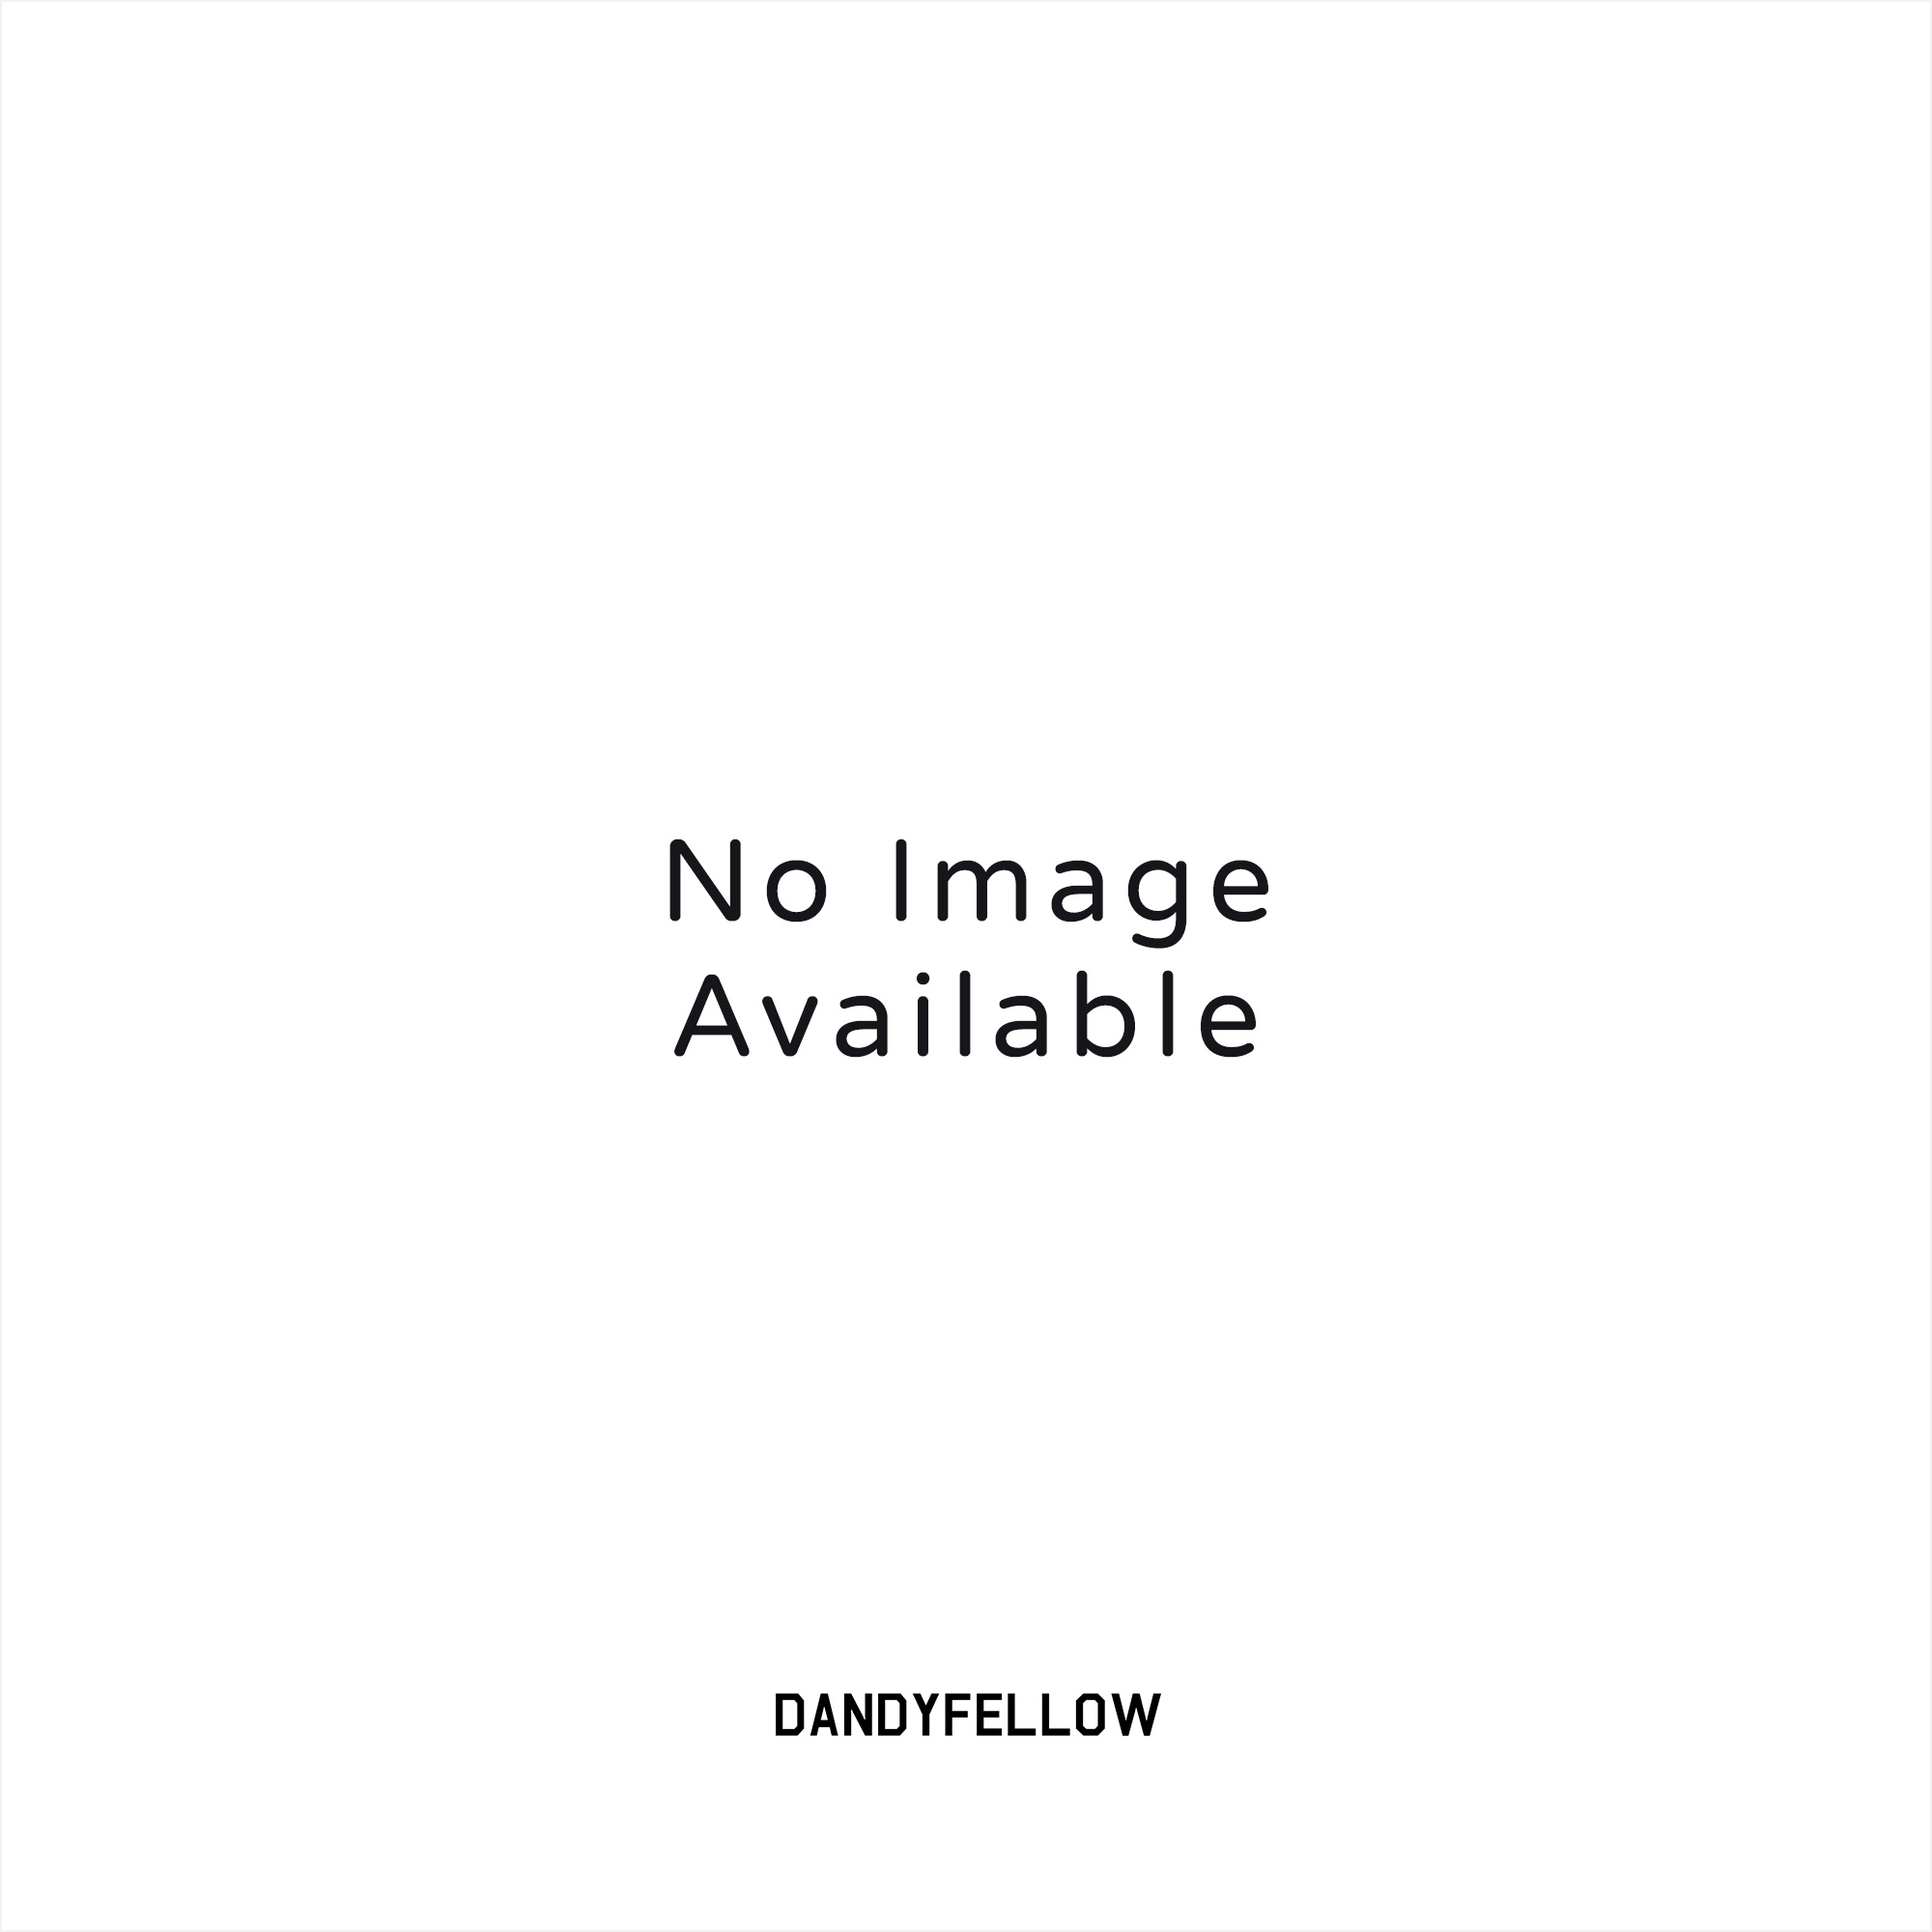 Fred Perry Authentic Fred Perry Pique Textured Black Shoulder Bag L9200 102